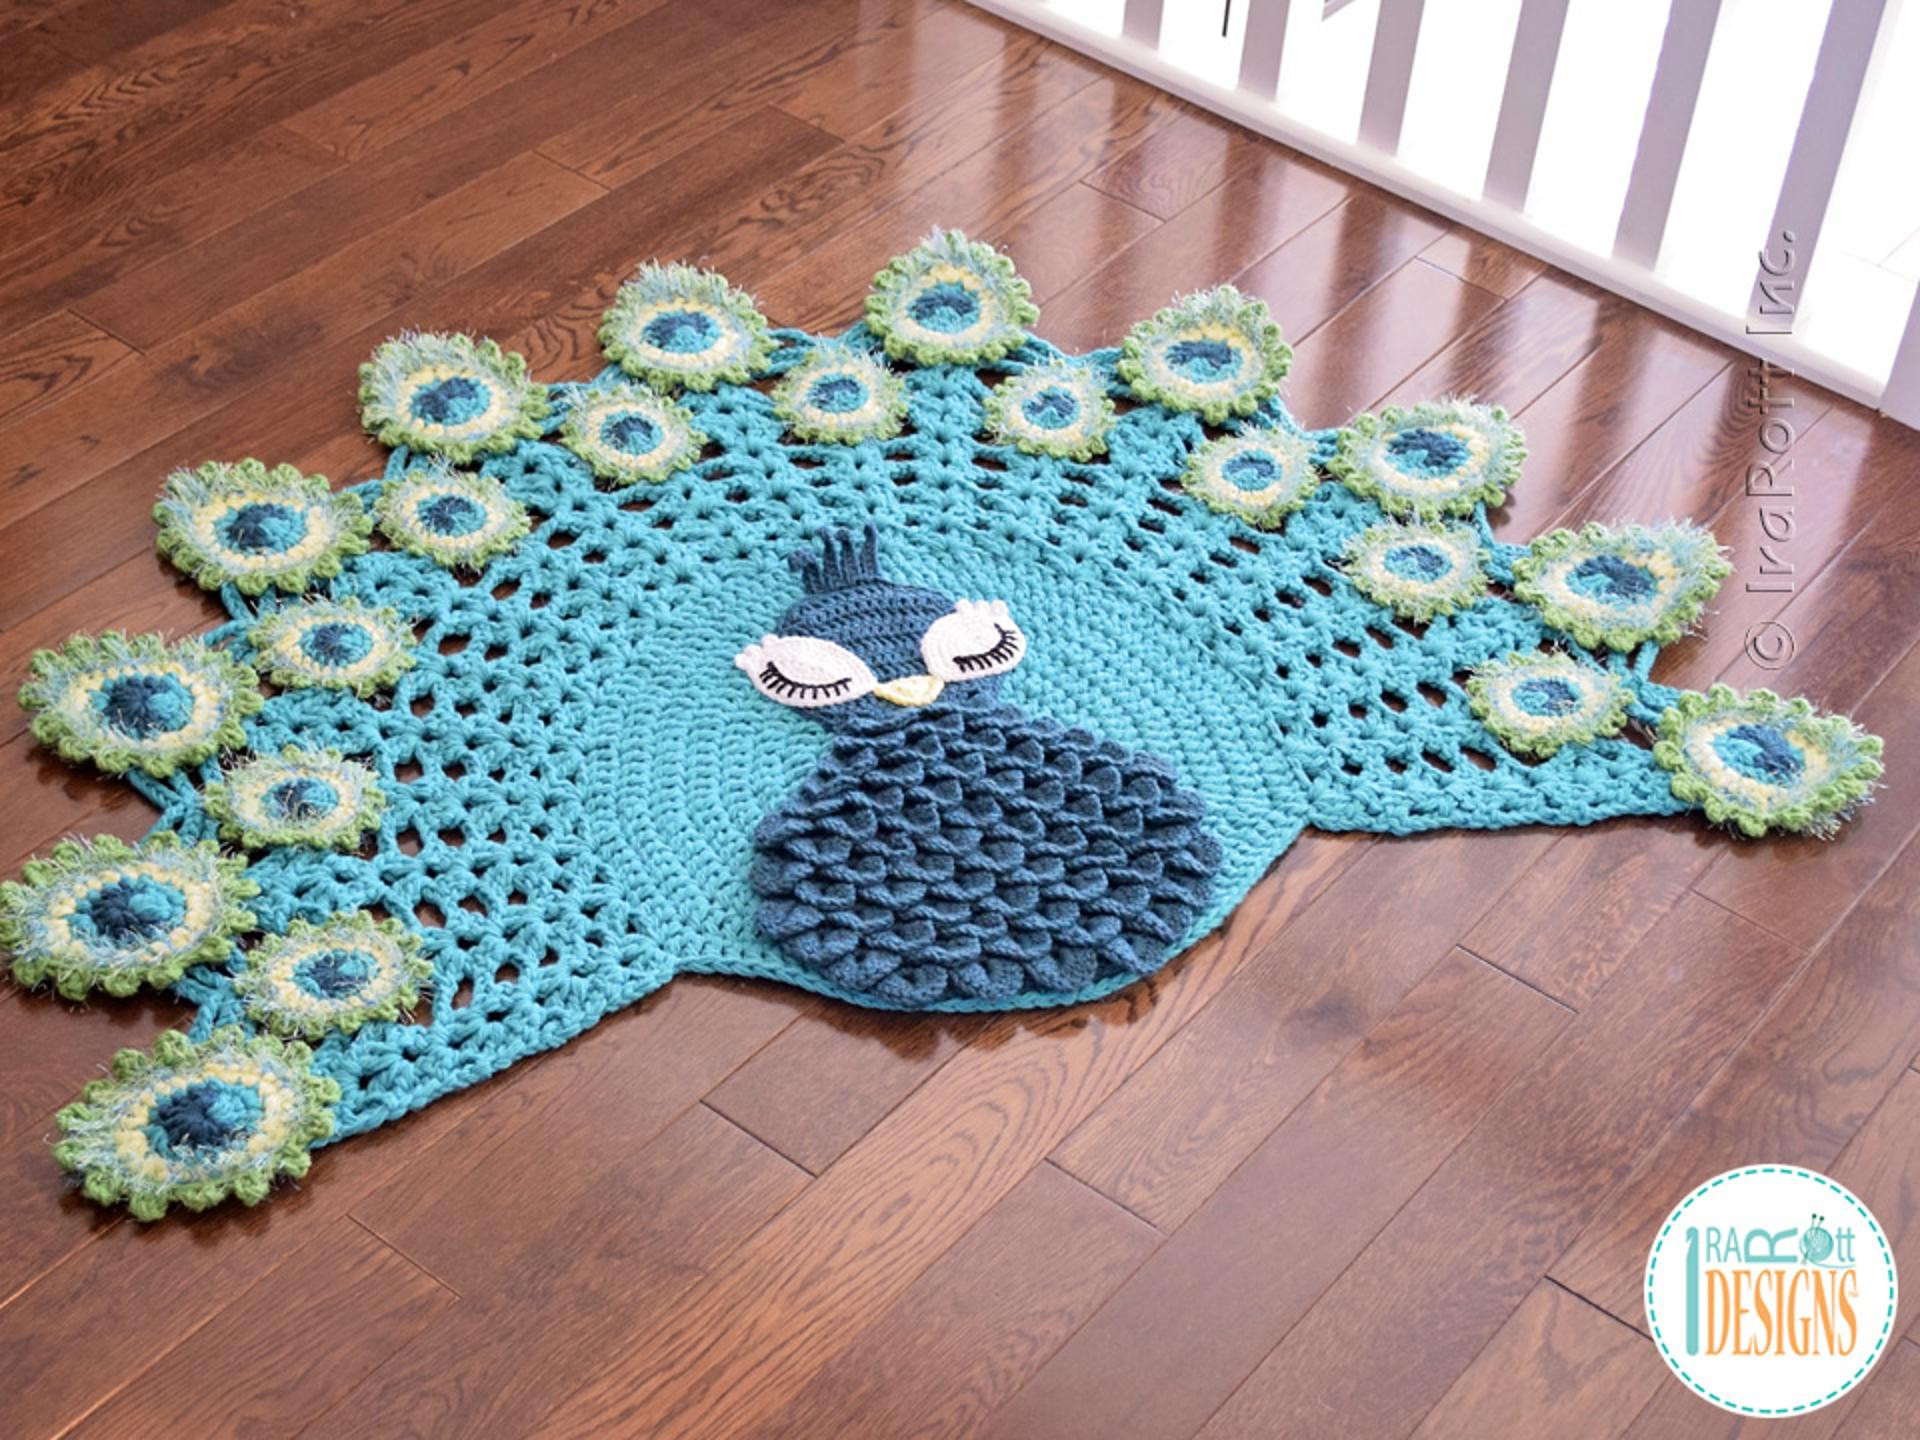 New 17 Unusual Unique Crochet Patterns to Shake Things Up Unique Crochet Patterns Of Superb 47 Images Unique Crochet Patterns